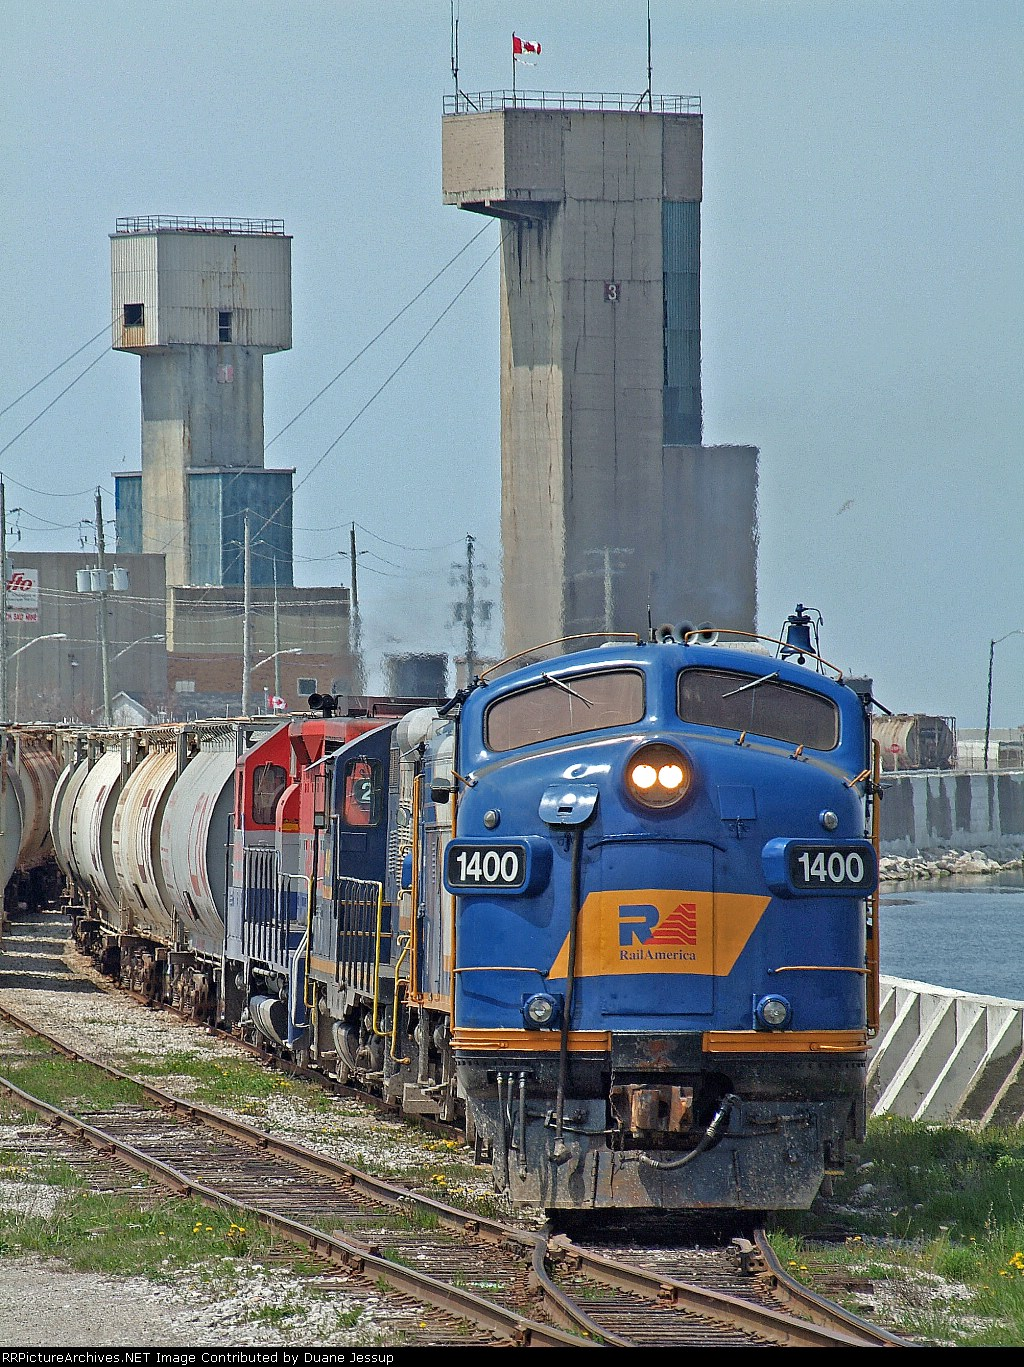 Railink 1400 with a trio of others spot hoppers at the salt mine in Goderich, Ontario